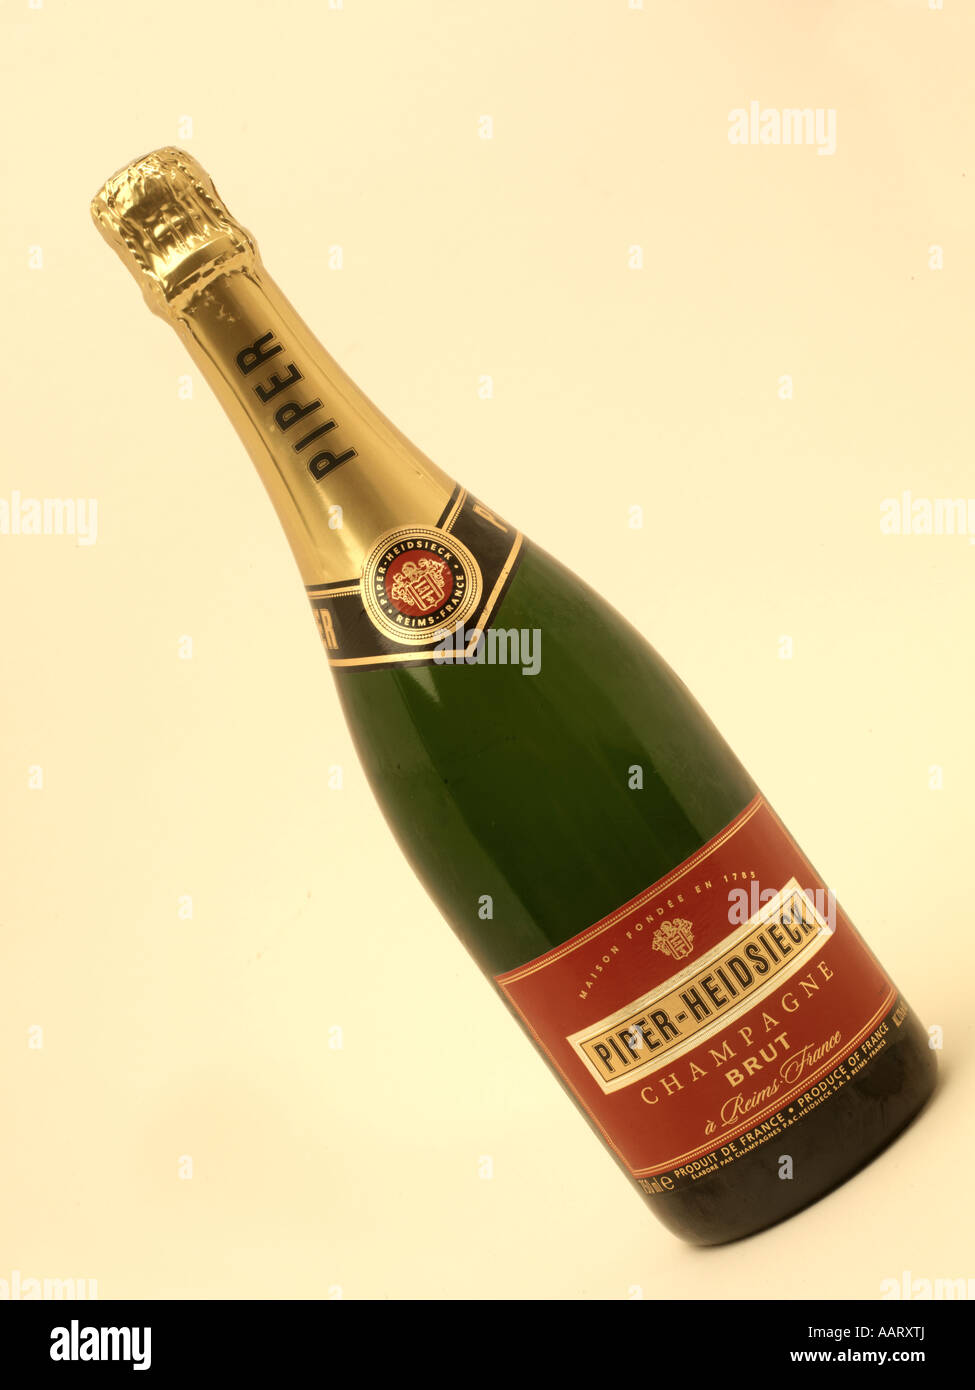 Piper Hiedsieck Champagne - Stock Image